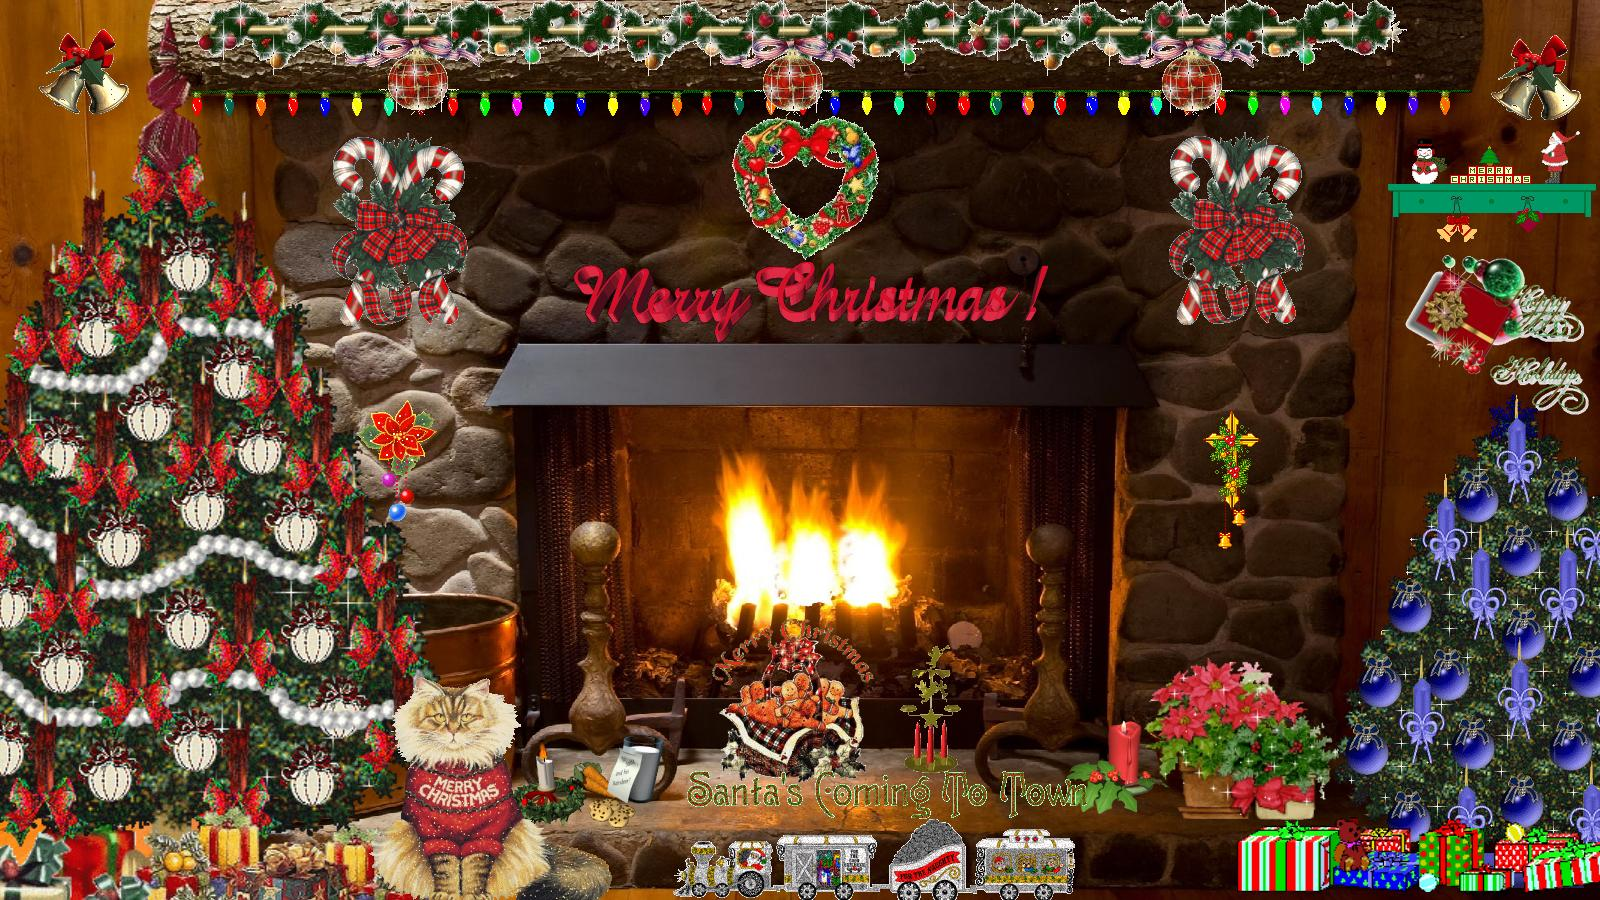 Free Fireplace Wallpaper: Christmas Fireplace Wallpaper Animated